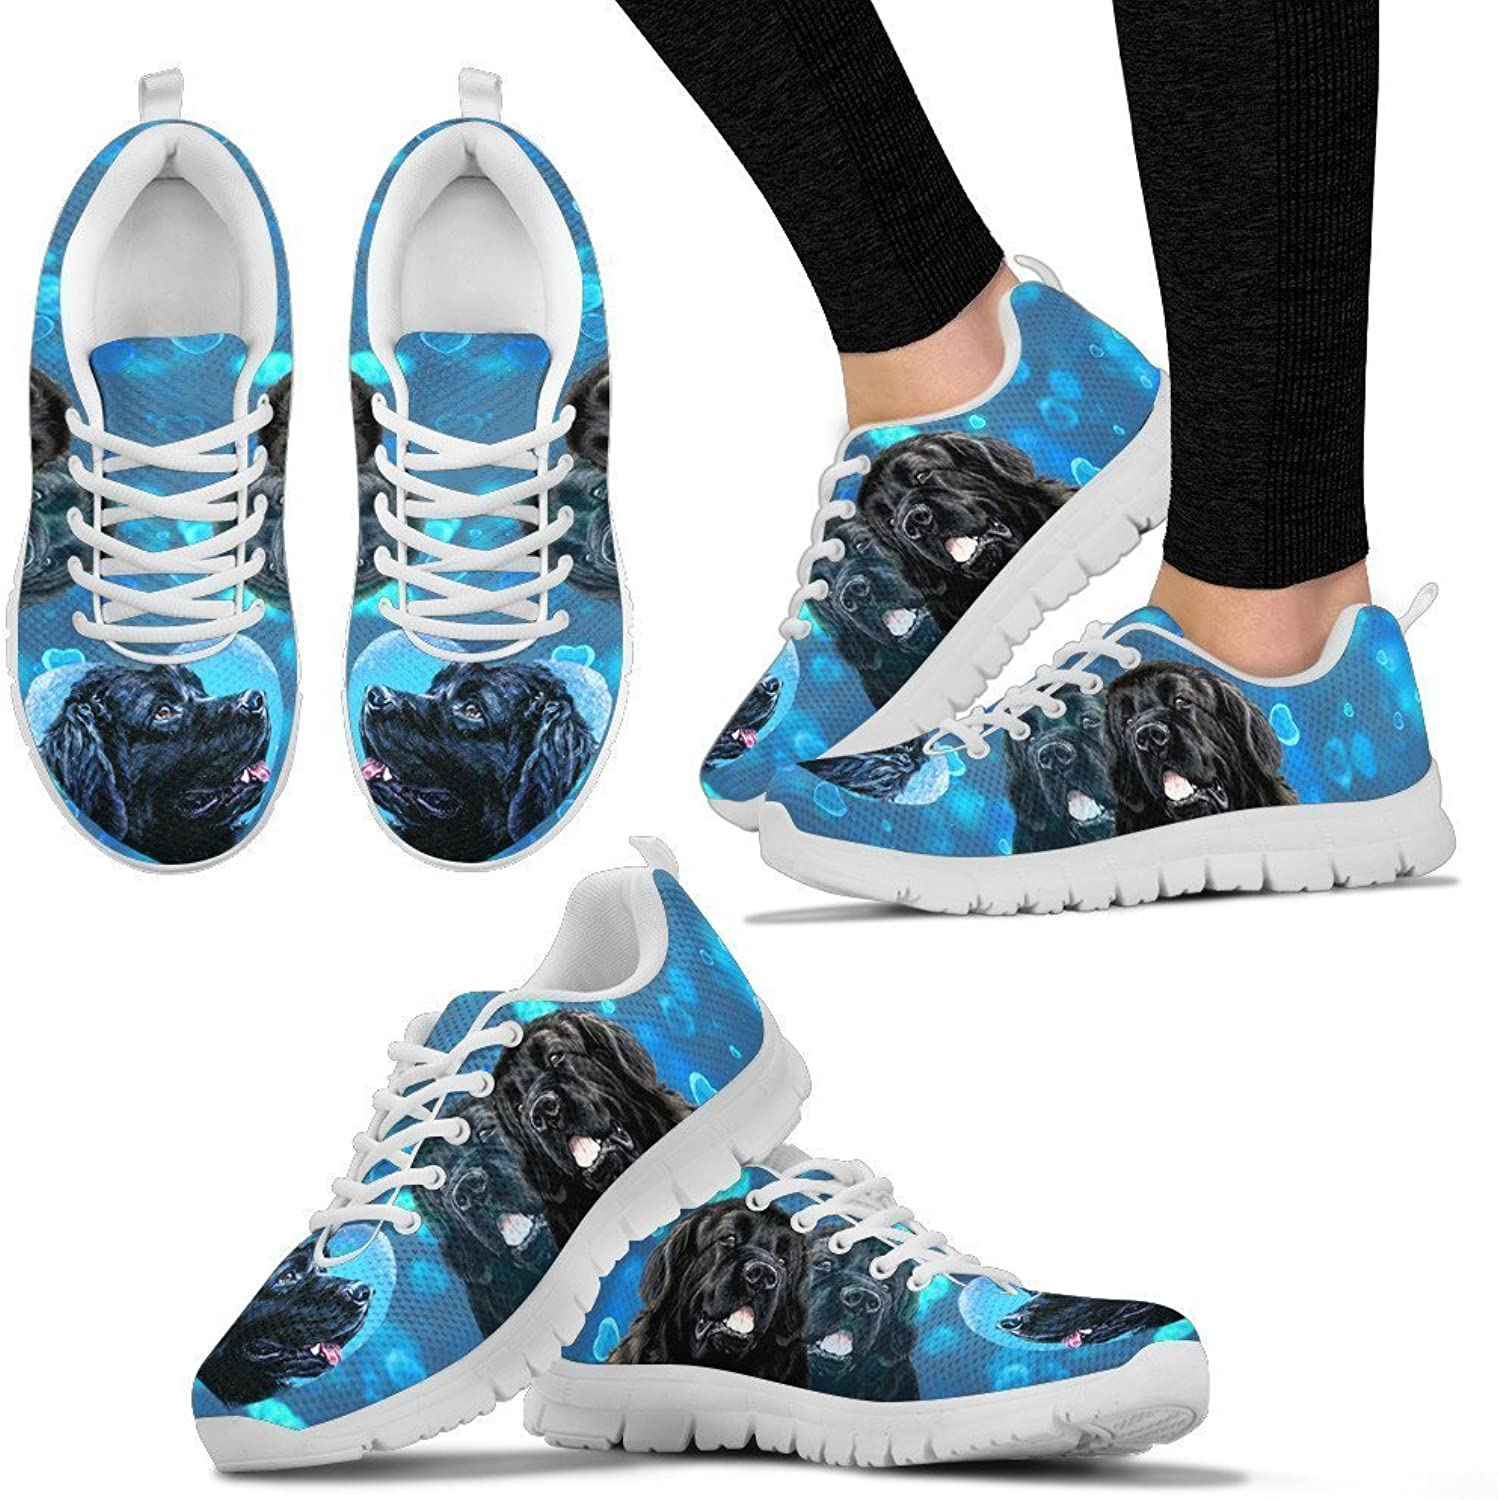 Pet By You Womens Running shoes - Lightweight Breathable Mesh Fabric Fashion Sneakers for Woman - Snug Fit Lace Closure Women Athletic shoes with Valentine's Day Special Newfoundland Dog Designs